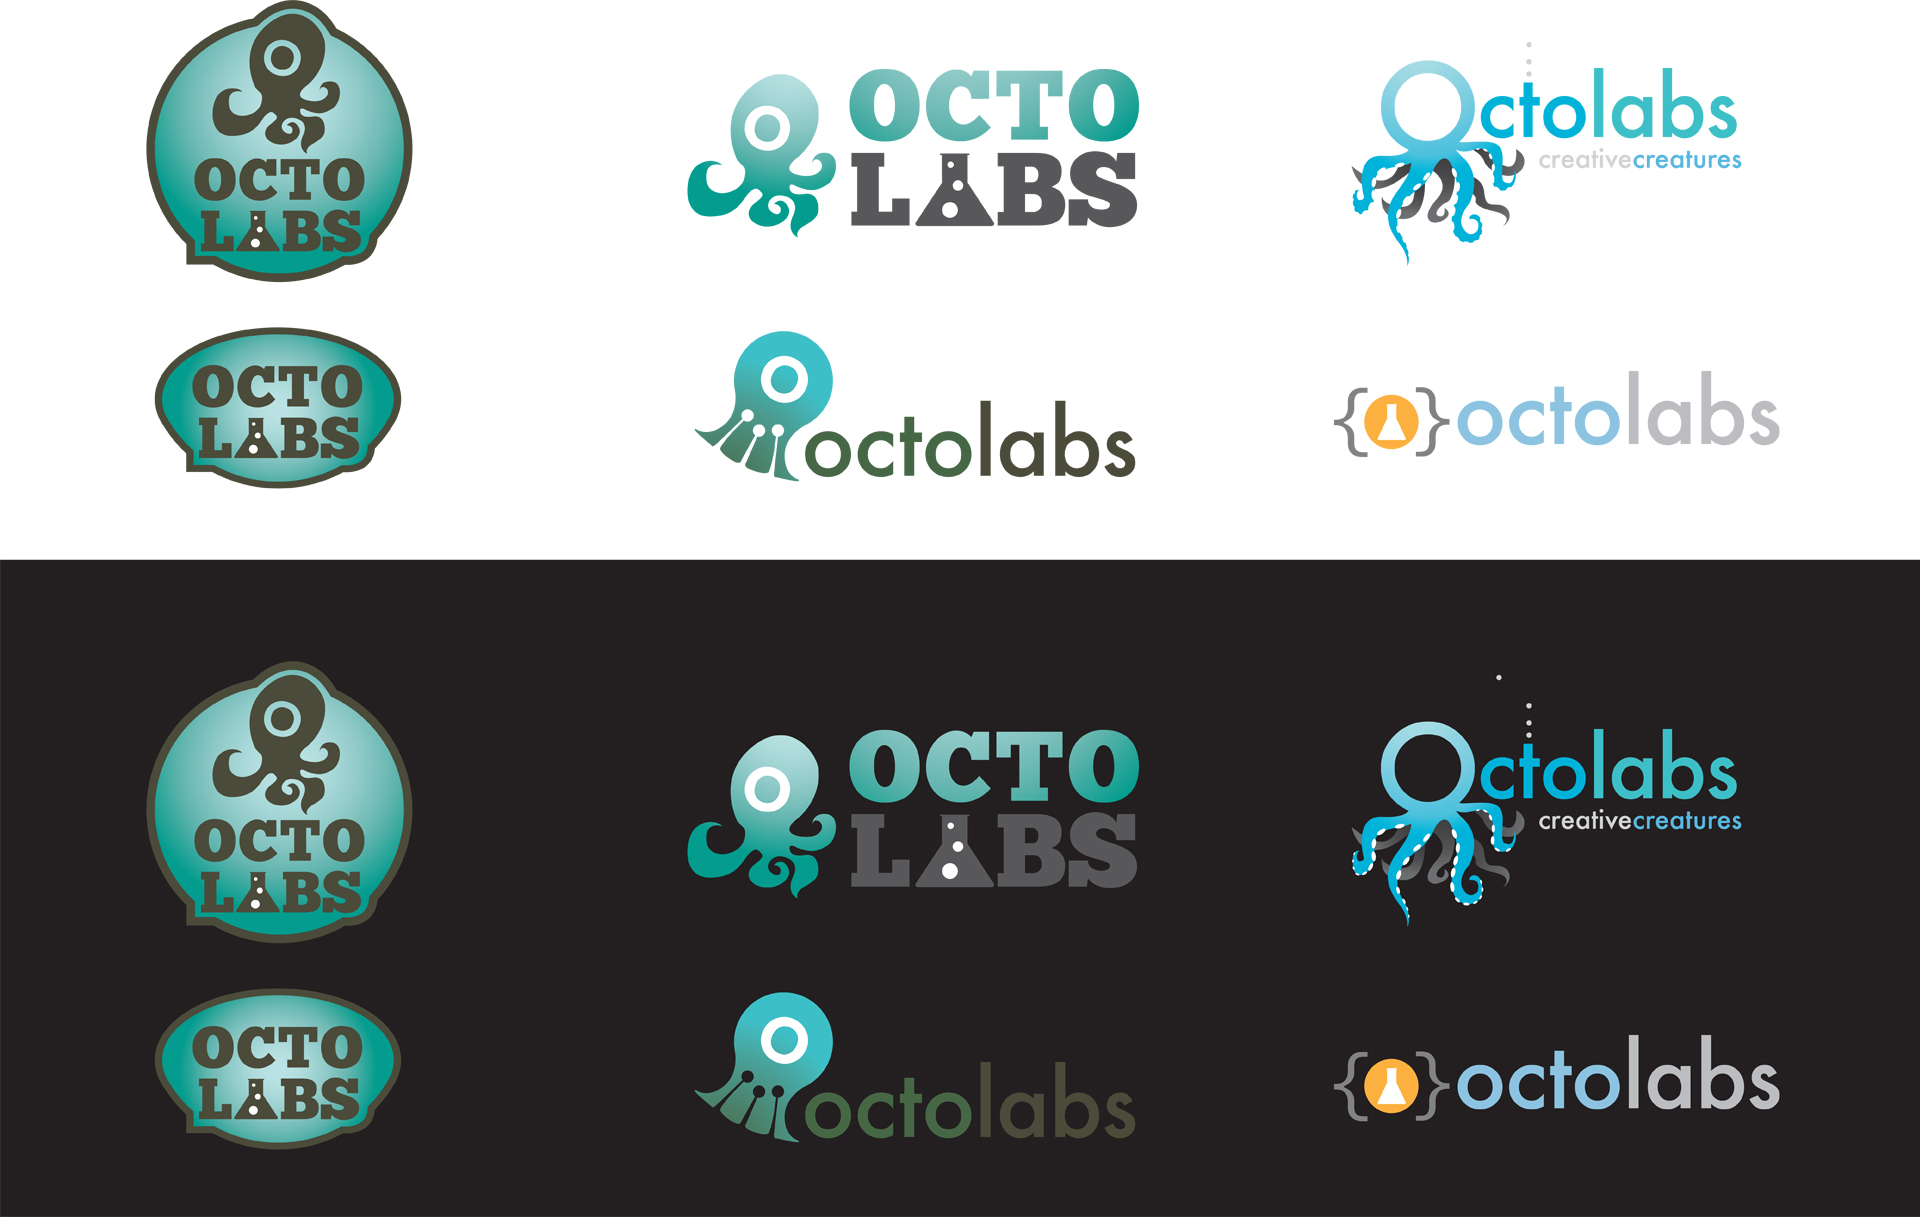 Nick Bolton design | Octolabs